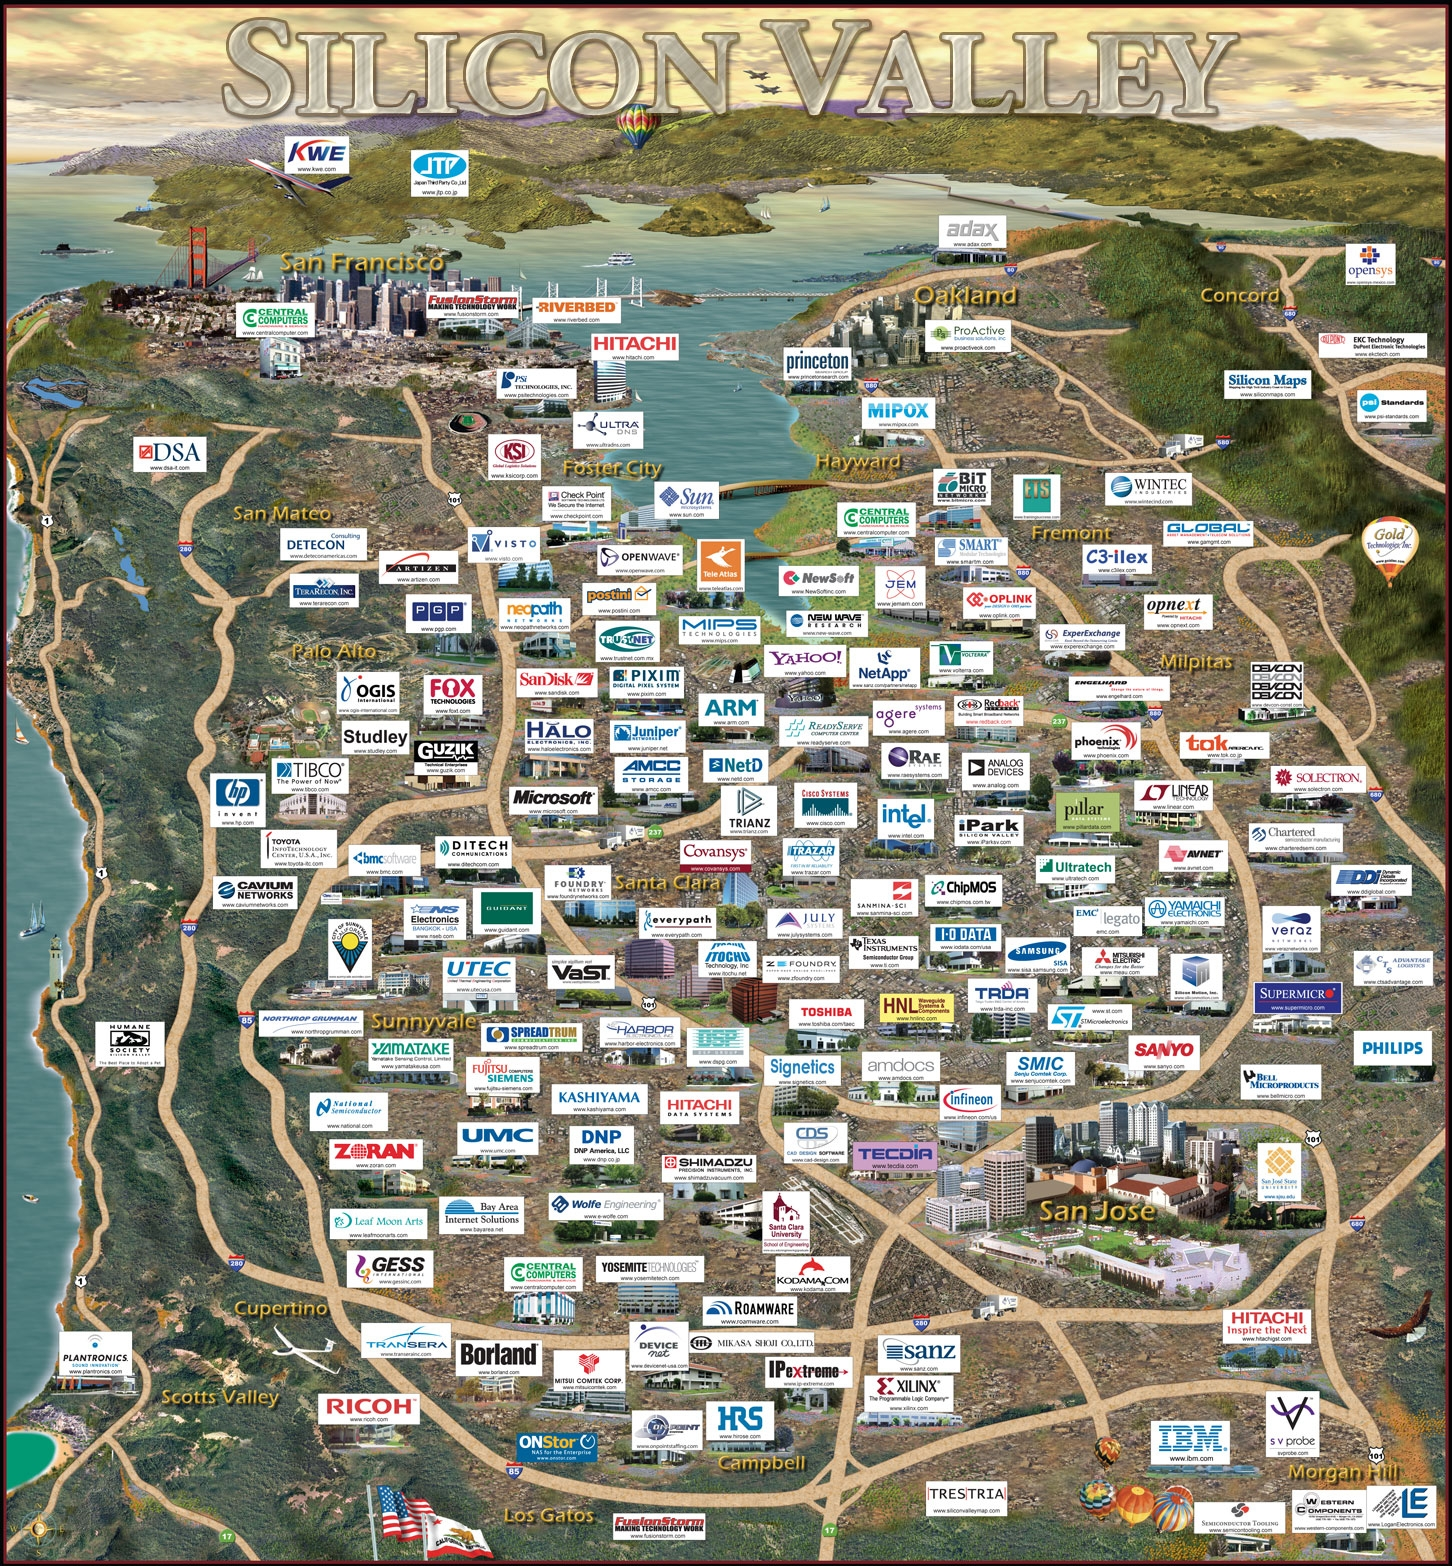 Silicon Valley (California - U.S.A.)